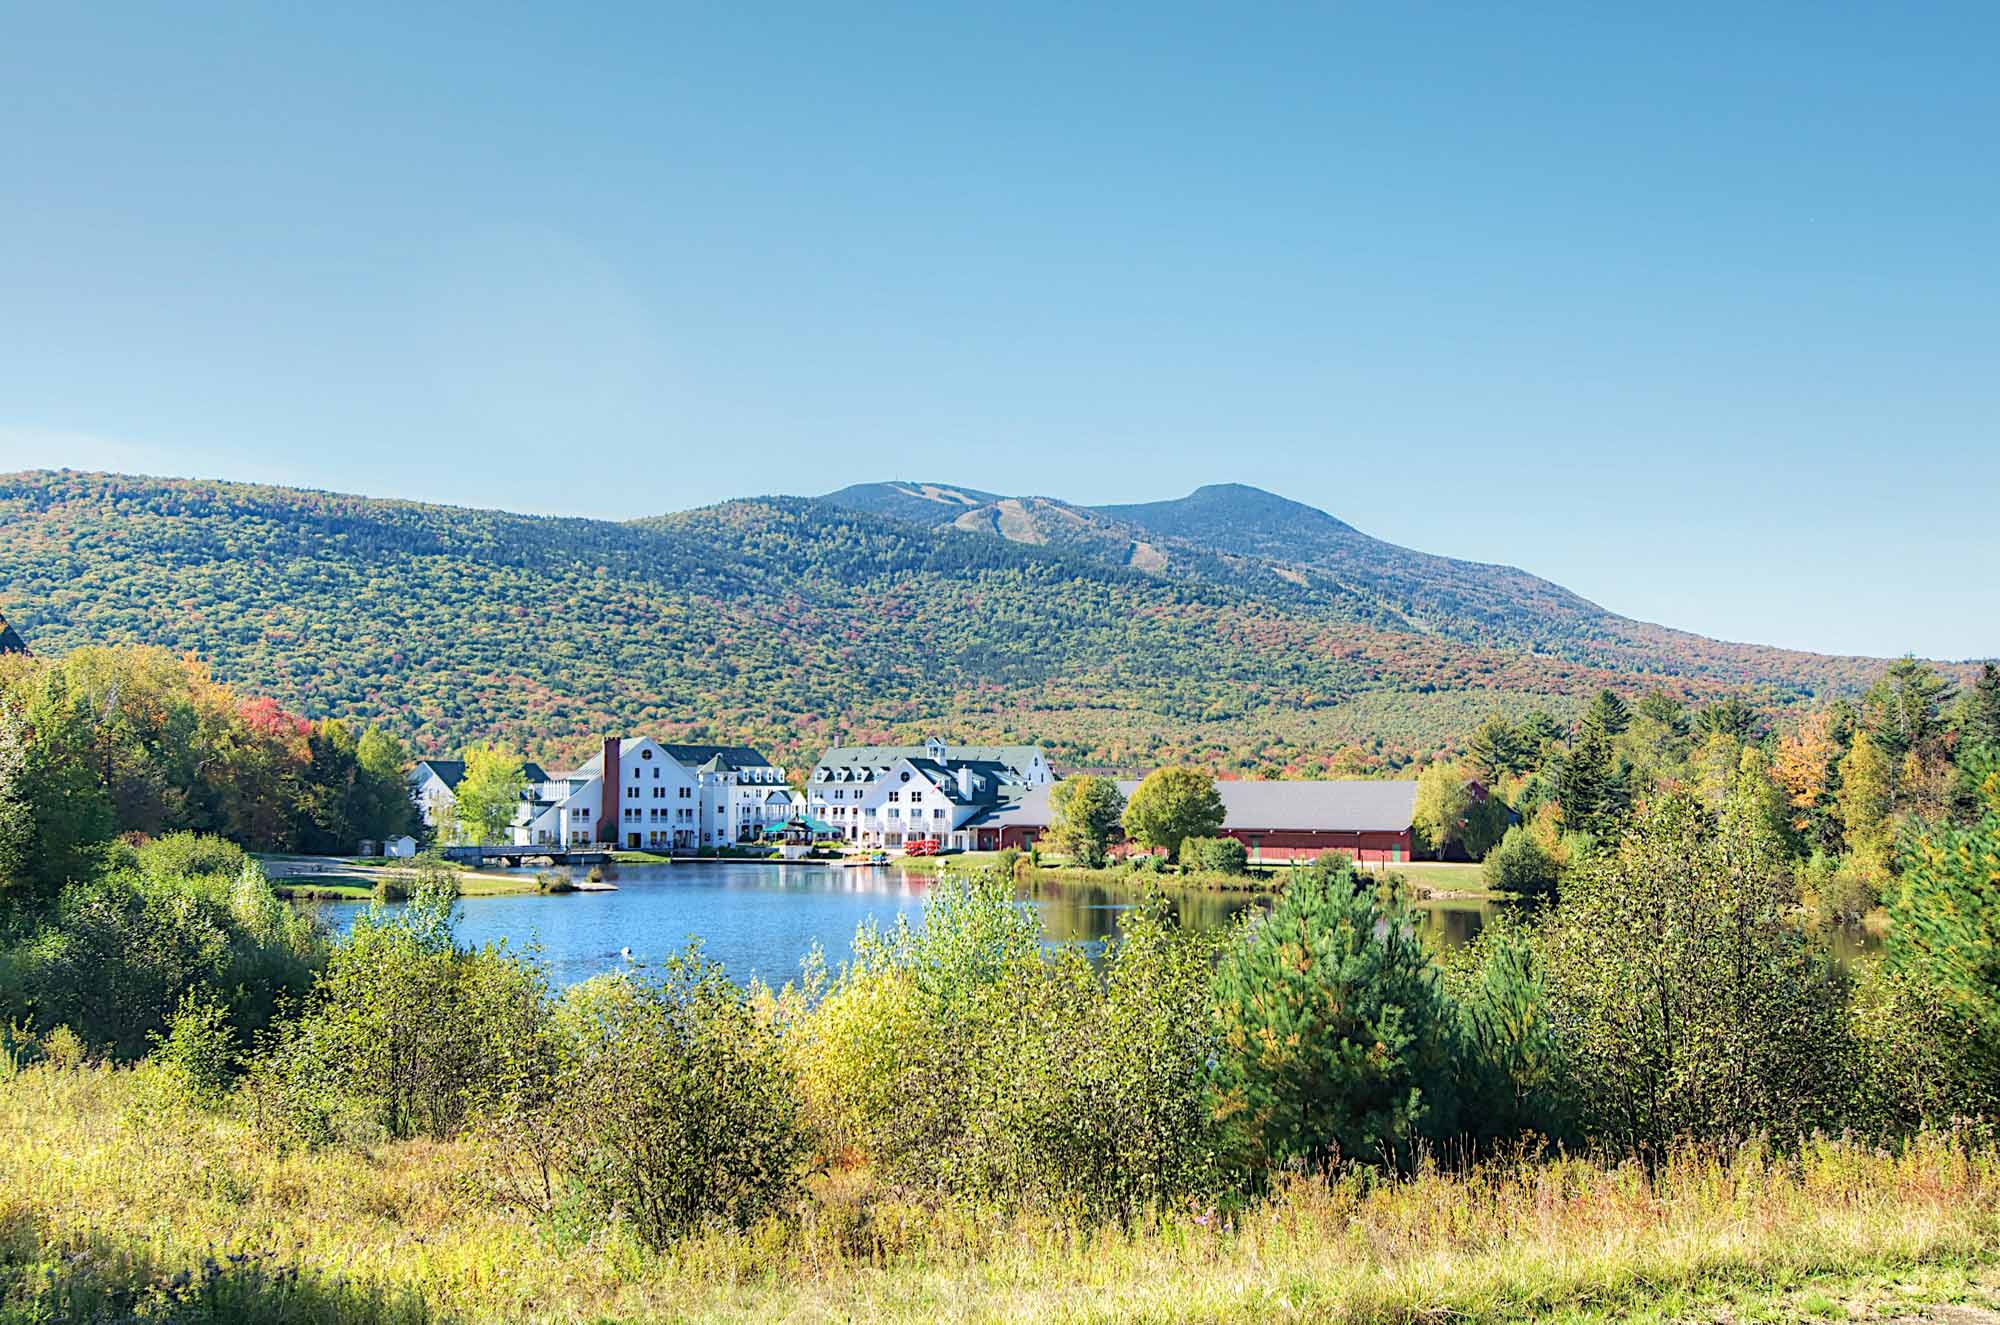 Villa per Vendita alle ore 20 Pine Tree Way, Waterville Valley Waterville Valley, New Hampshire, 03215 Stati Uniti